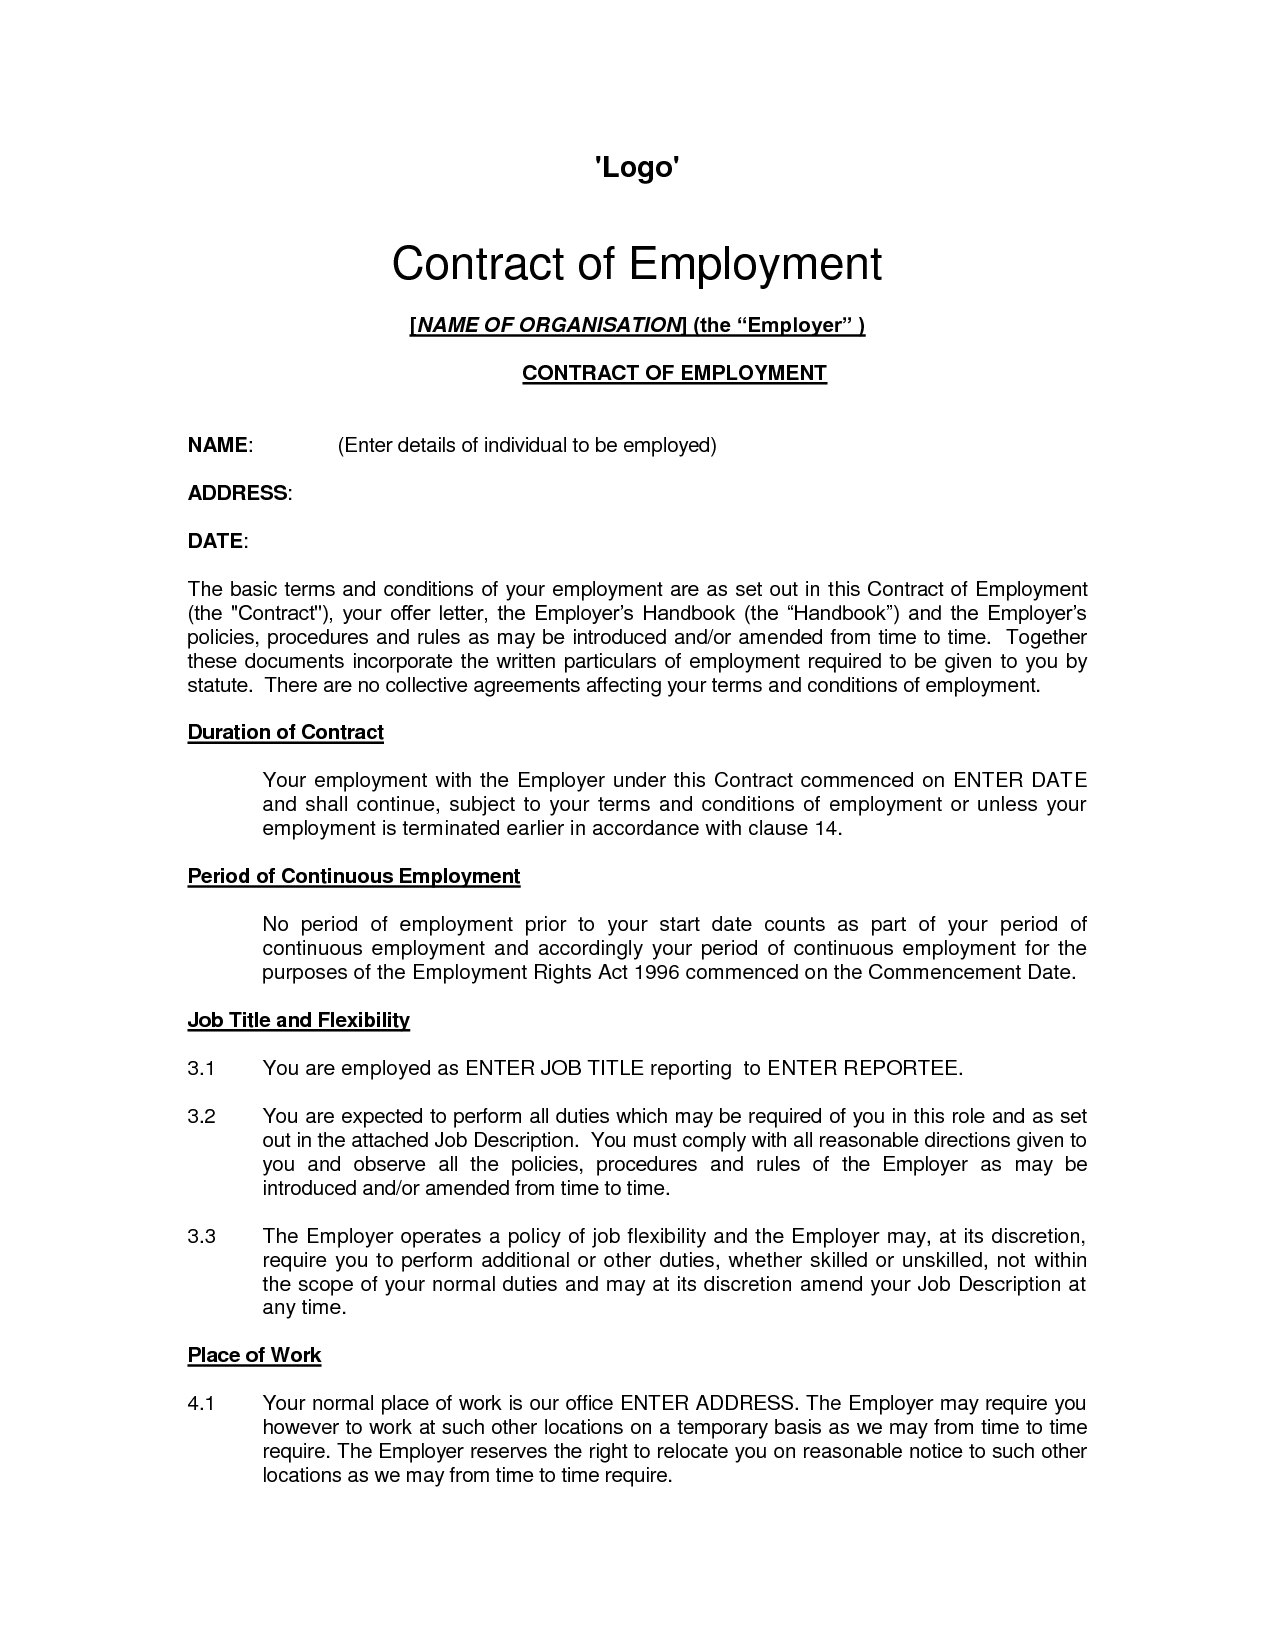 letter format for contract to permanent employment professional letter format for contract to permanent employment the employment contract template in pdf word excel of